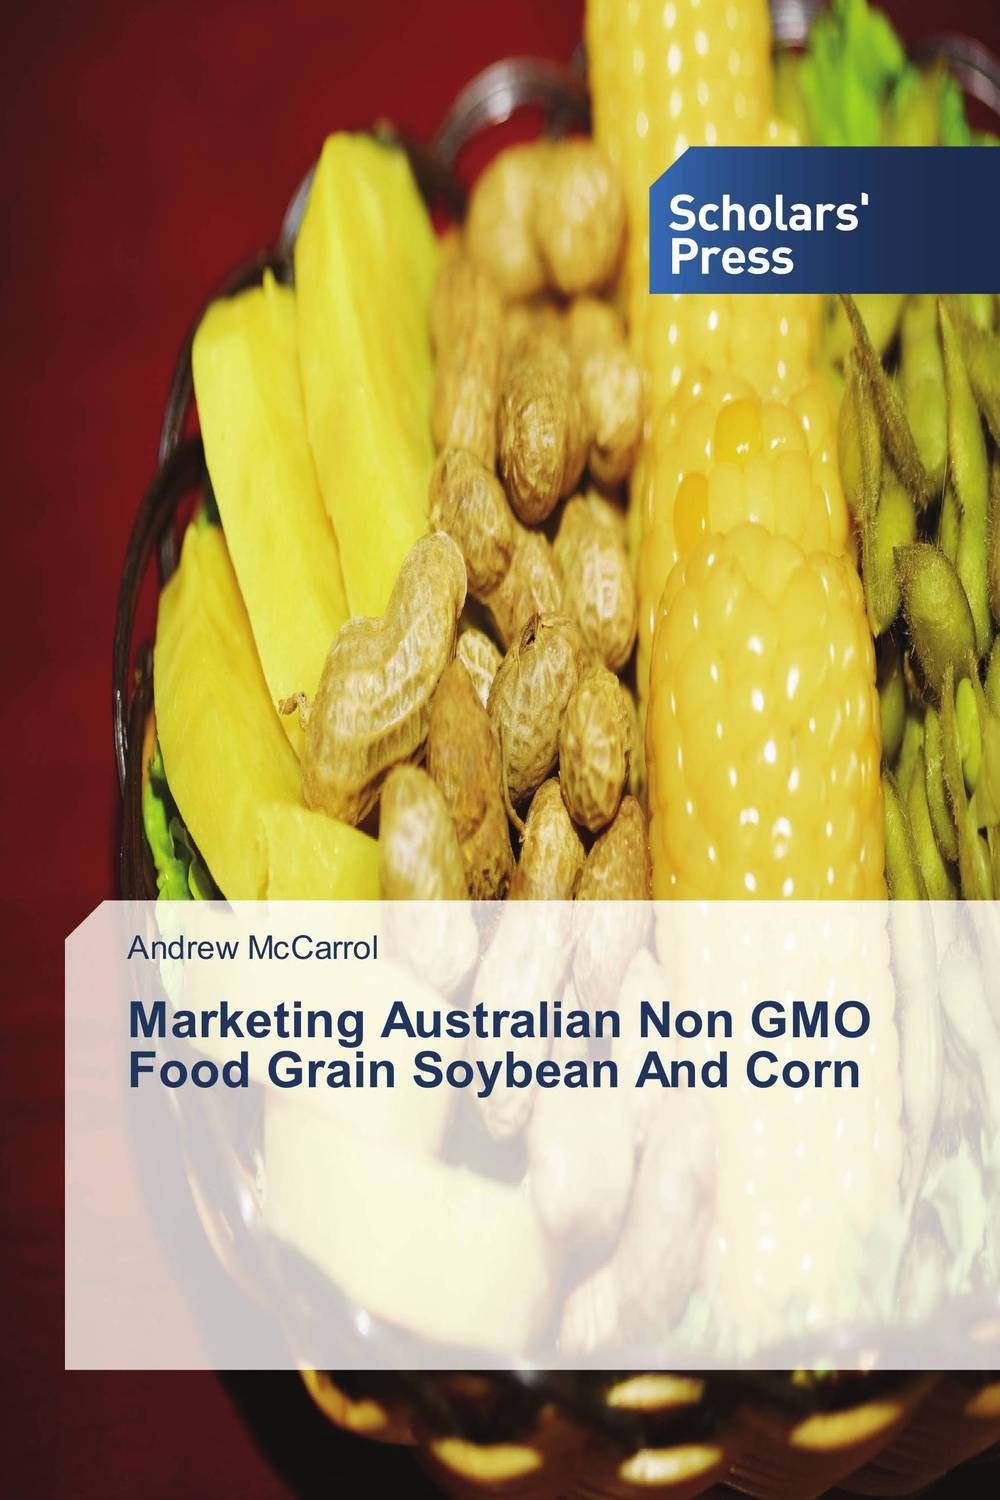 Marketing Australian Non GMO Food Grain Soybean And Corn